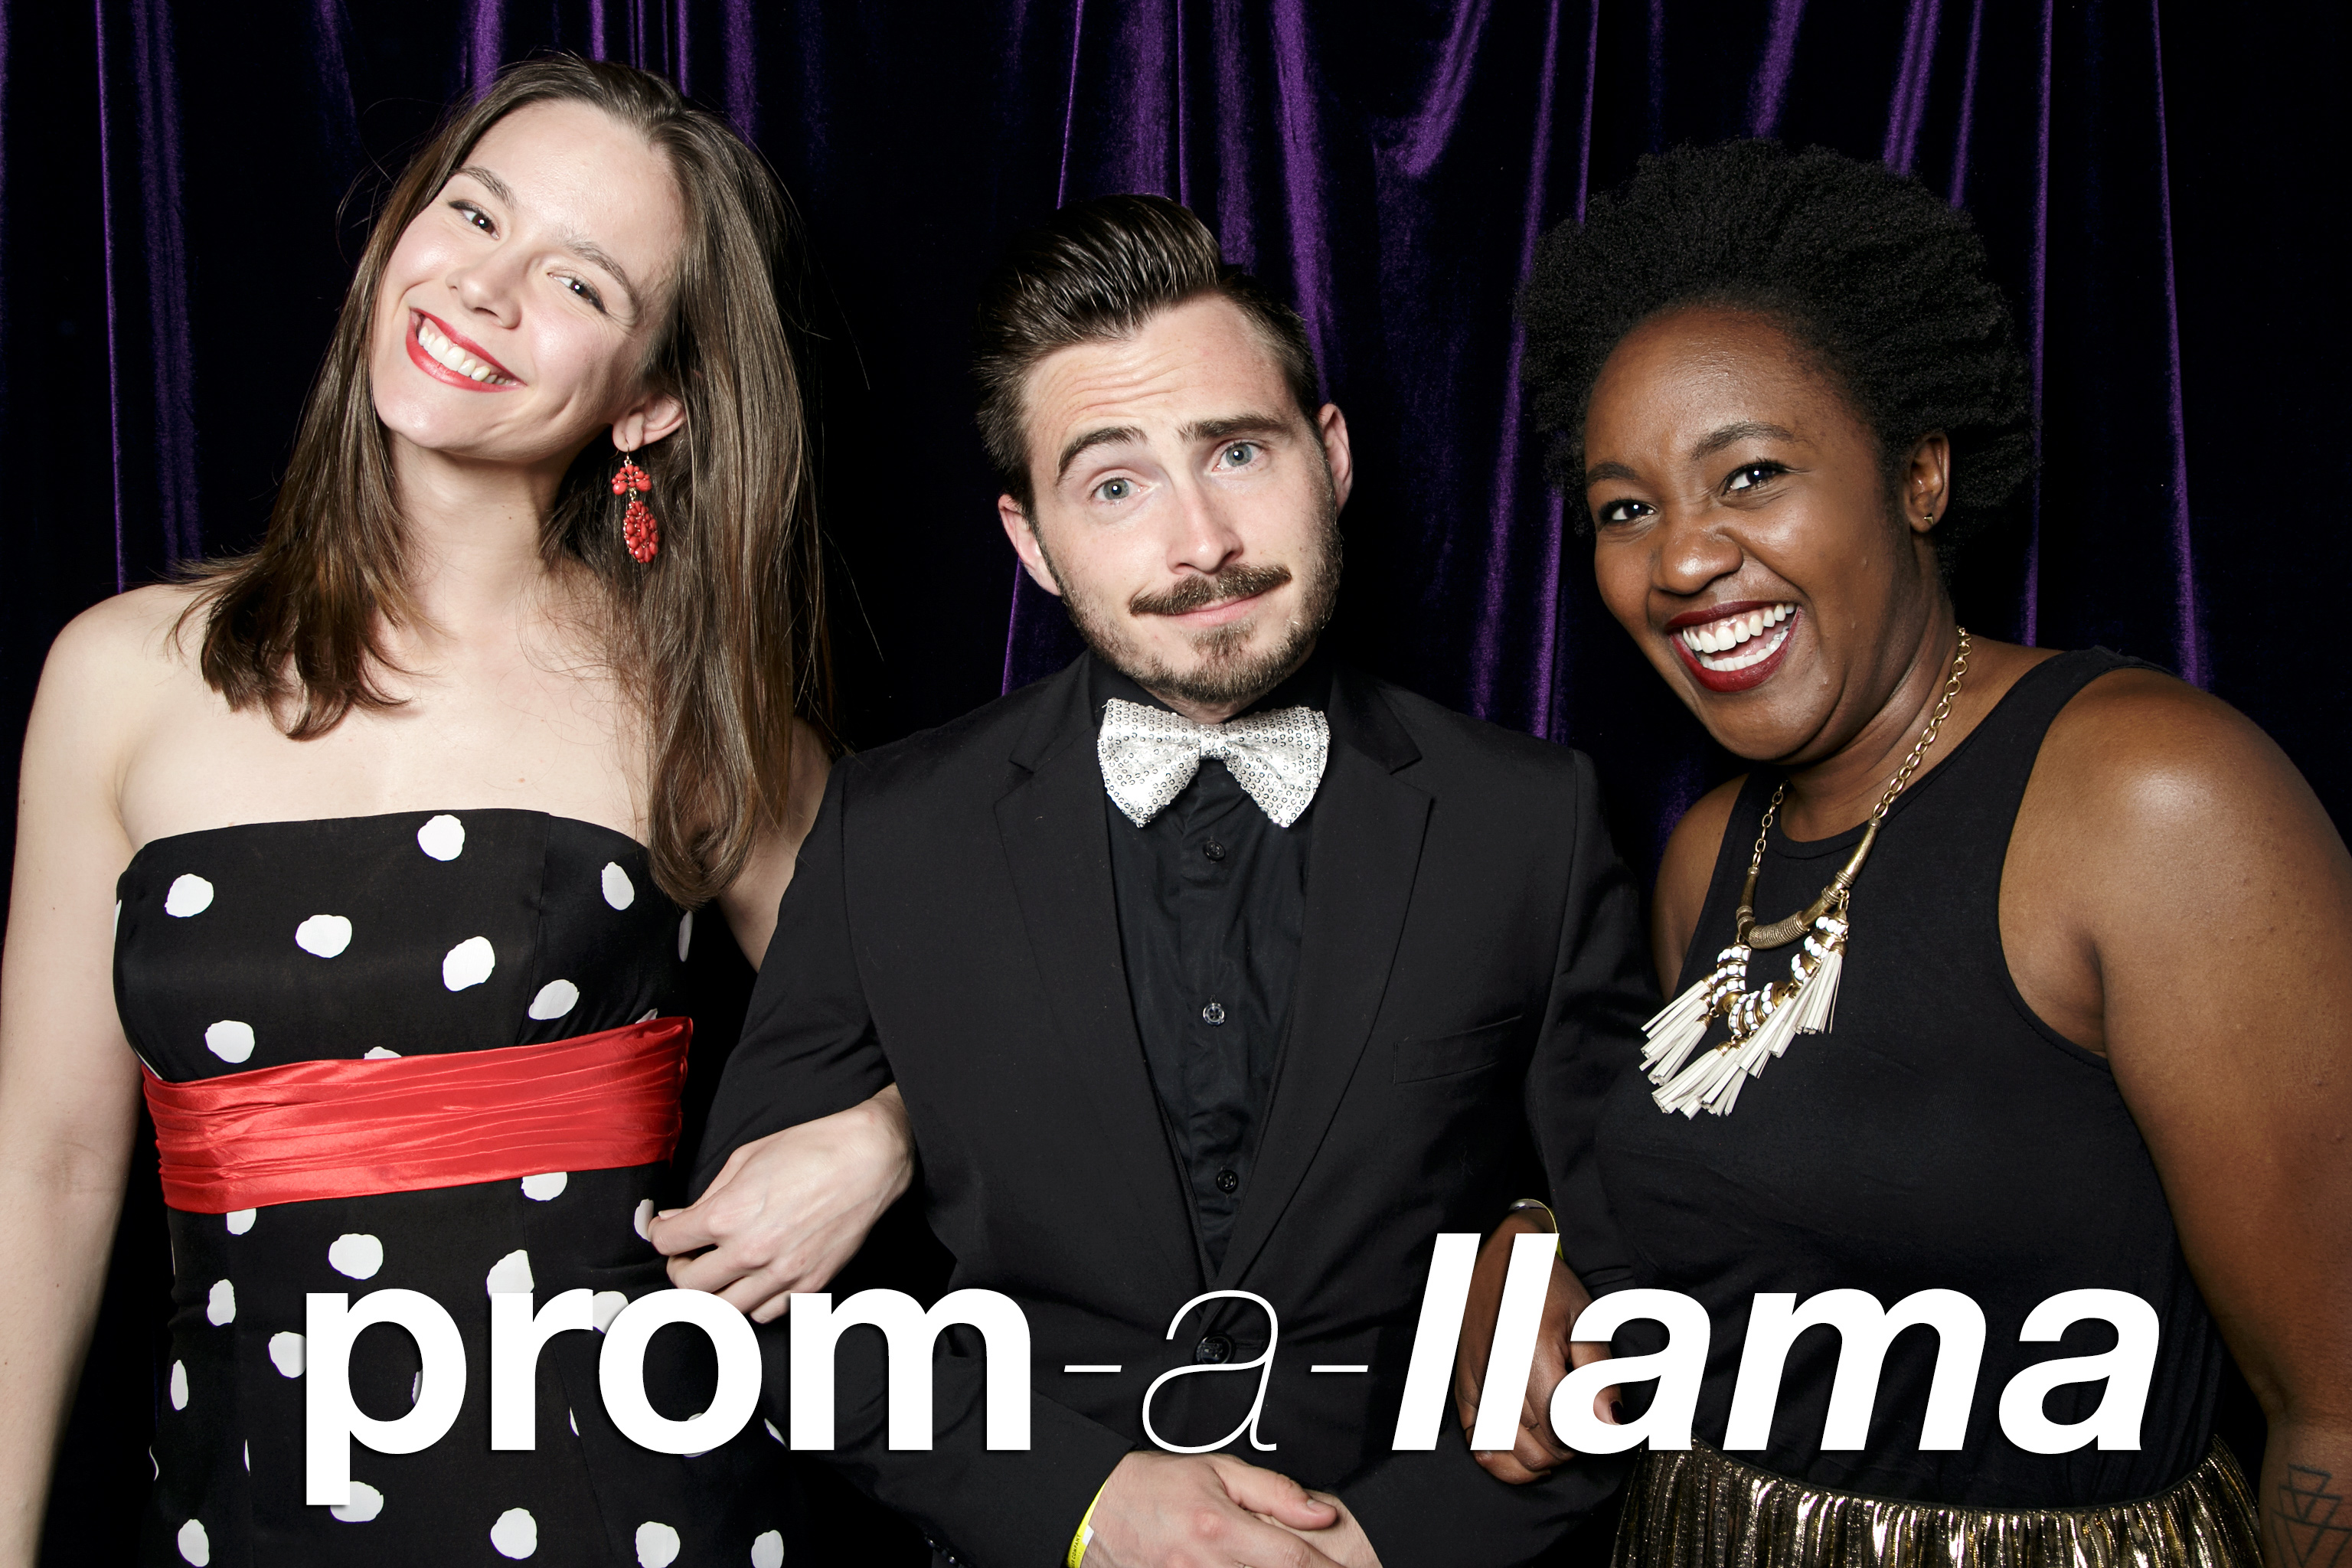 portrait booth photos from prom a llama boom boom at chop shop, may 2017